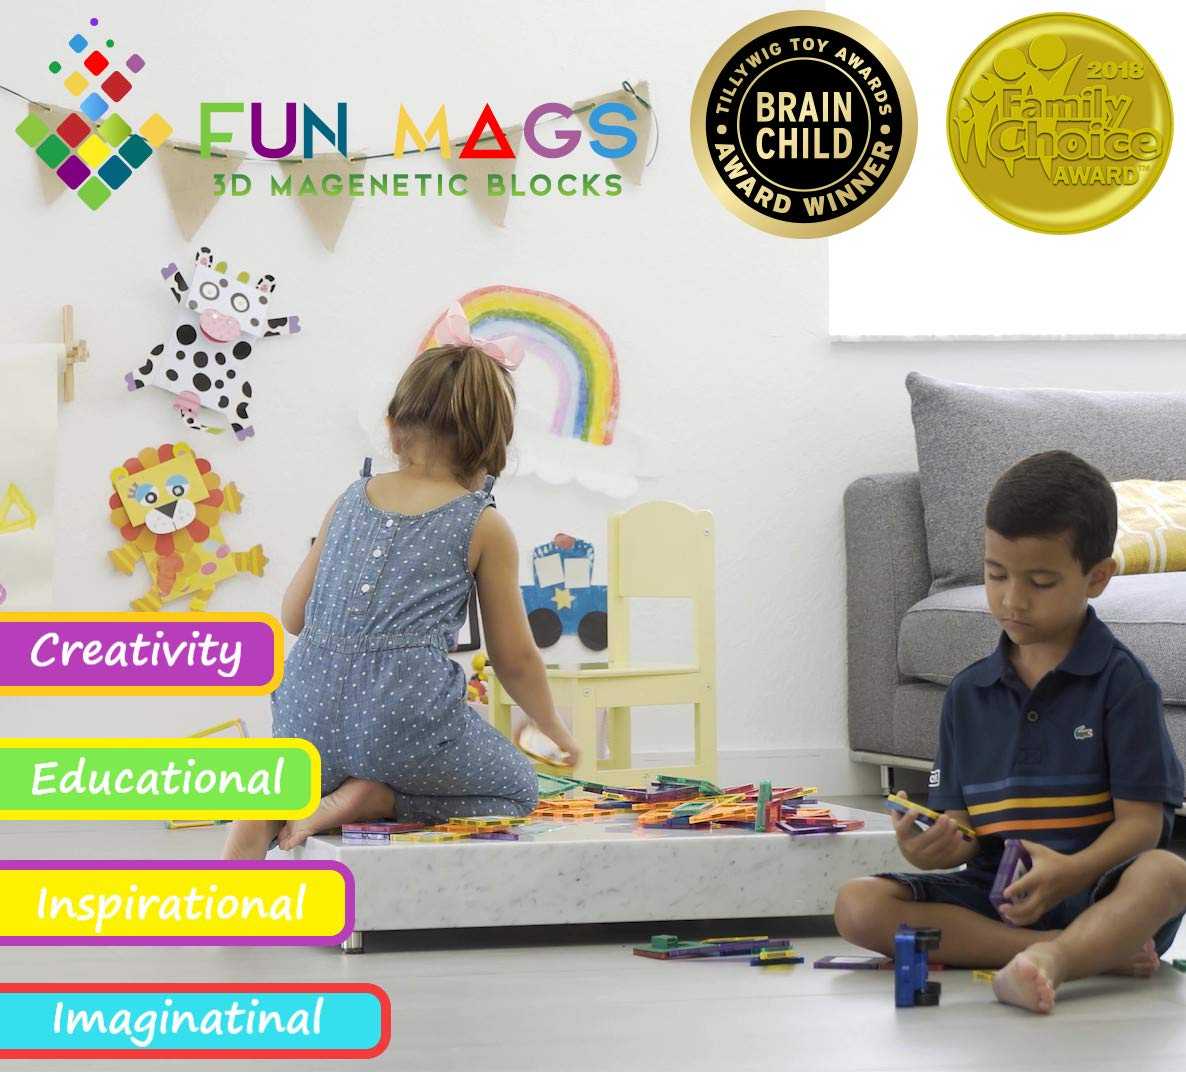 Fun Mags Magnetic Blocks 100-Piece Set 3D Magnetic Building Blocks, STEM Educational Magna Magnetic Tiles Magnet Toys for Kids, Toddlers by Lustien Toys (Image #4)